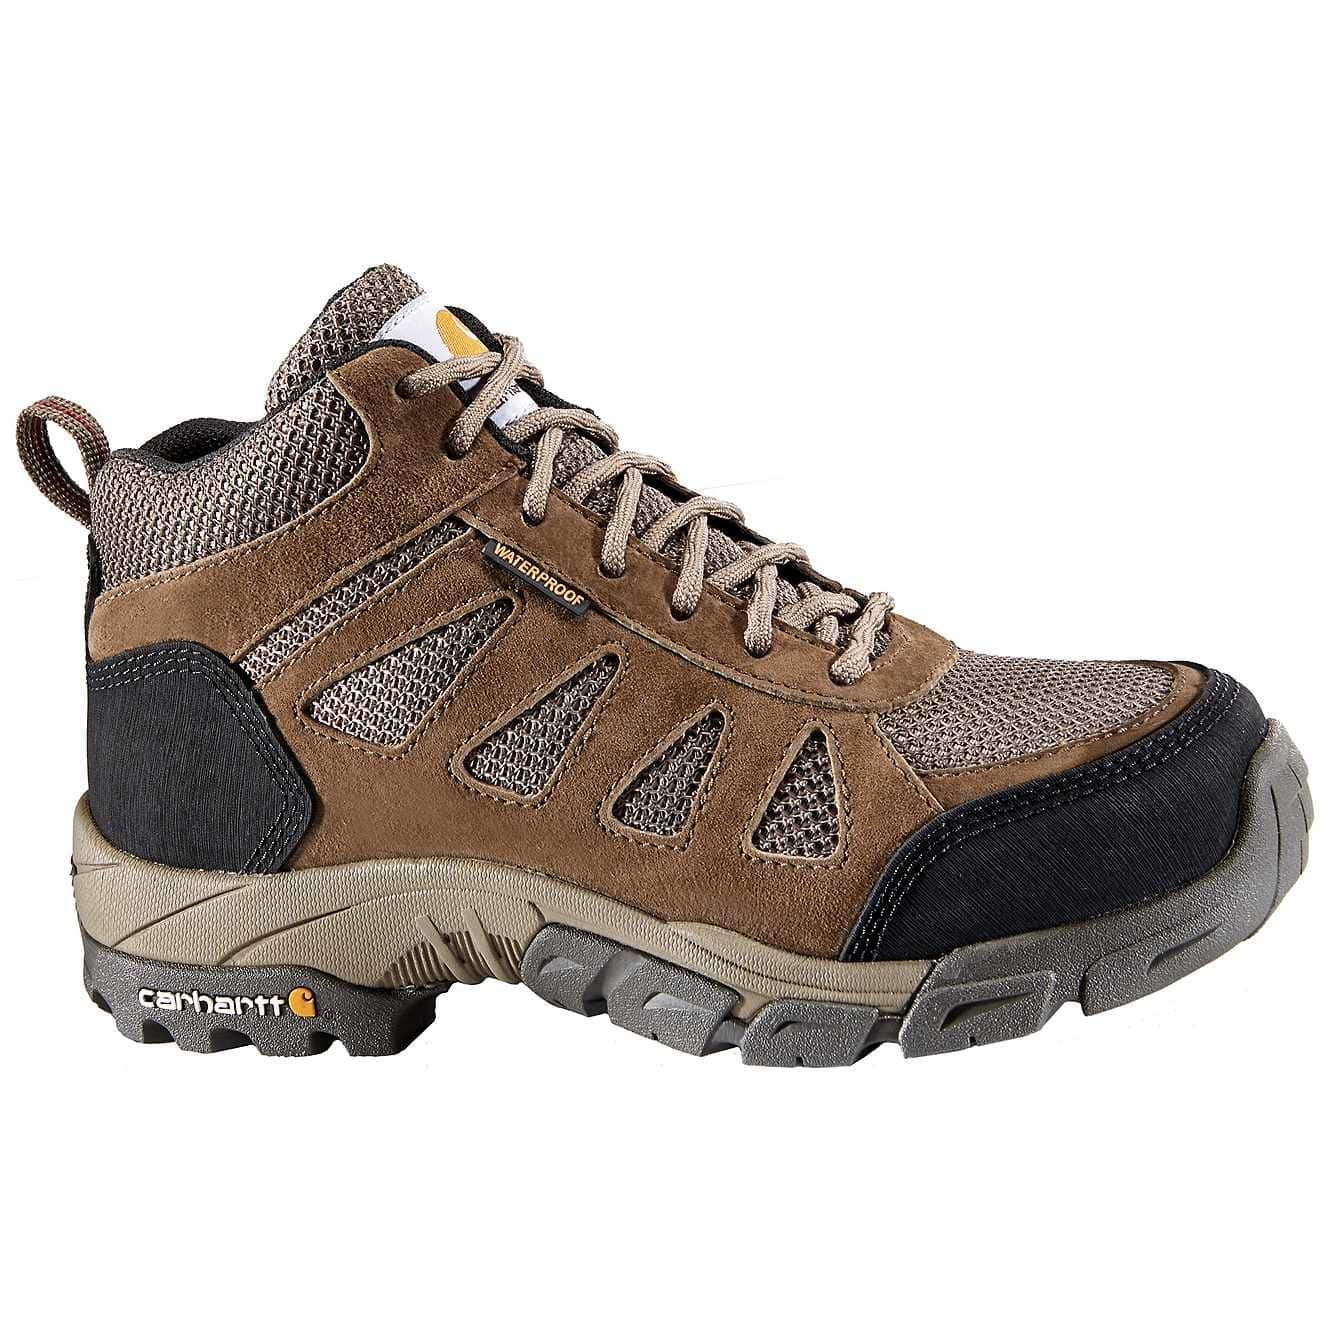 Picture of Lightweight Safety Toe Work Hiker in Brown Leather and Nylon